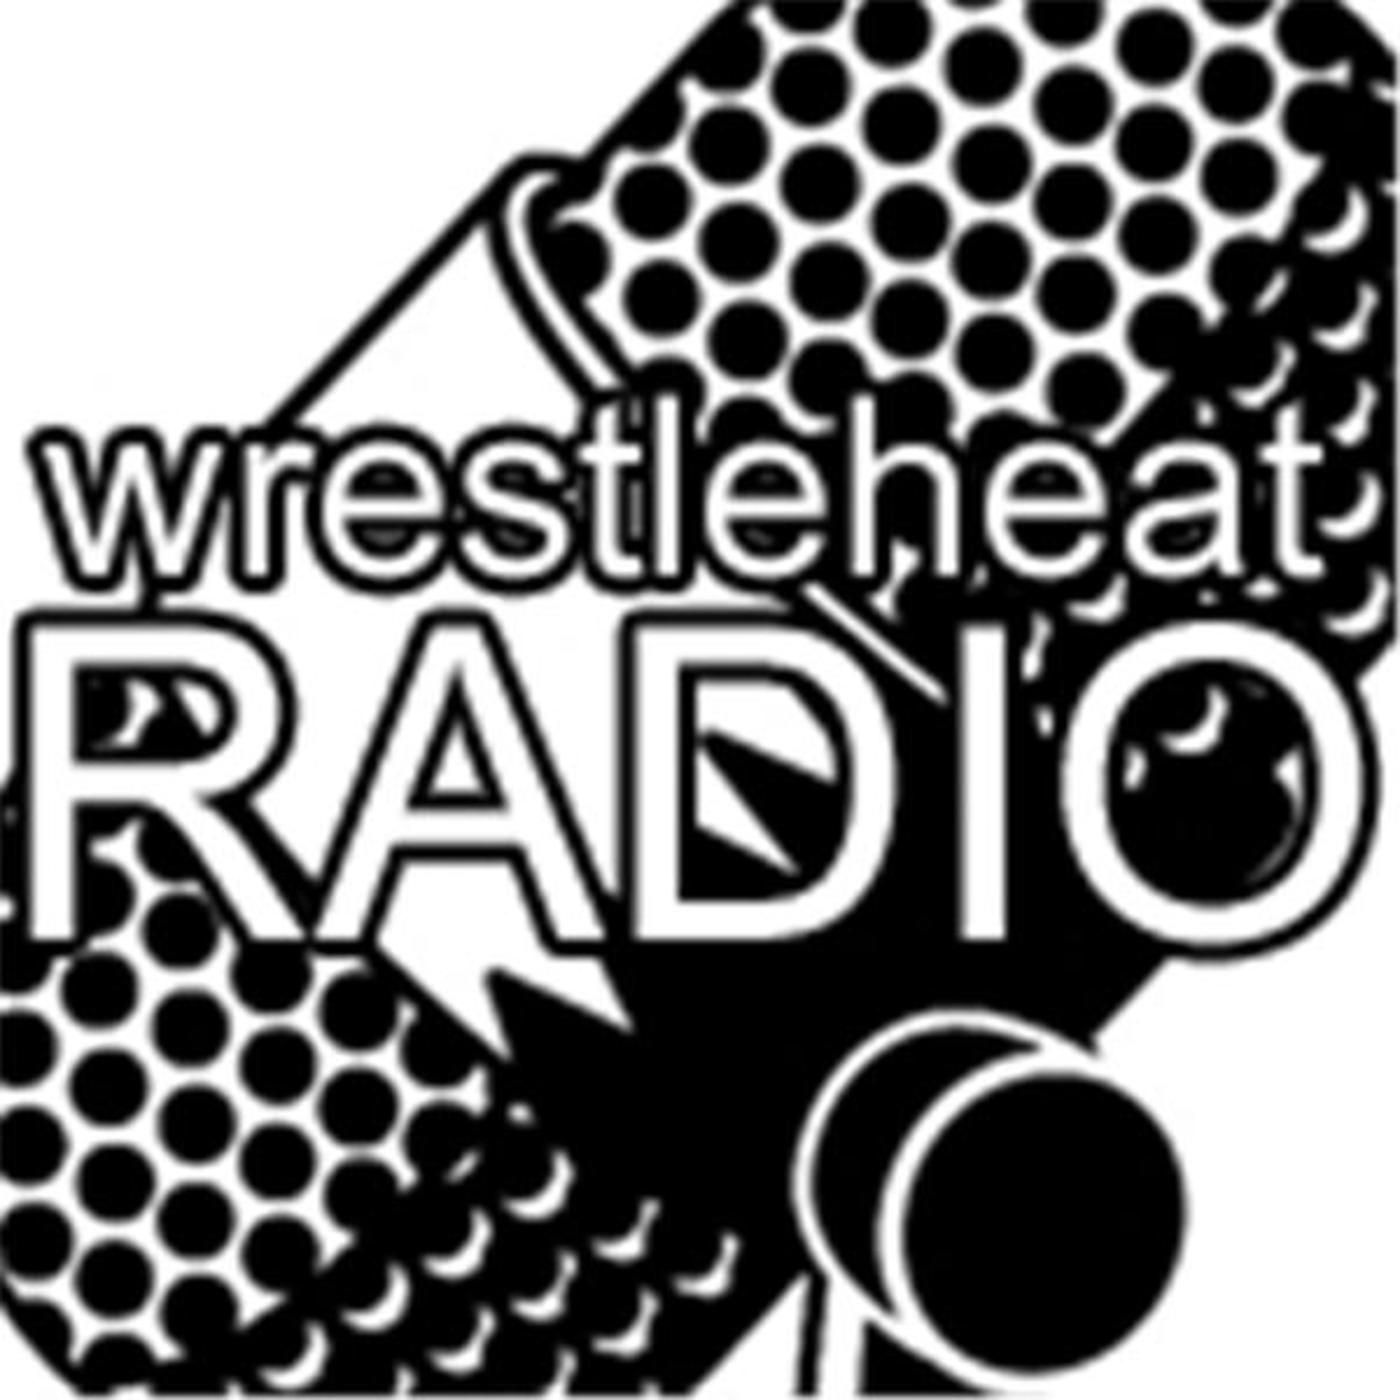 WrestleHeat Radio